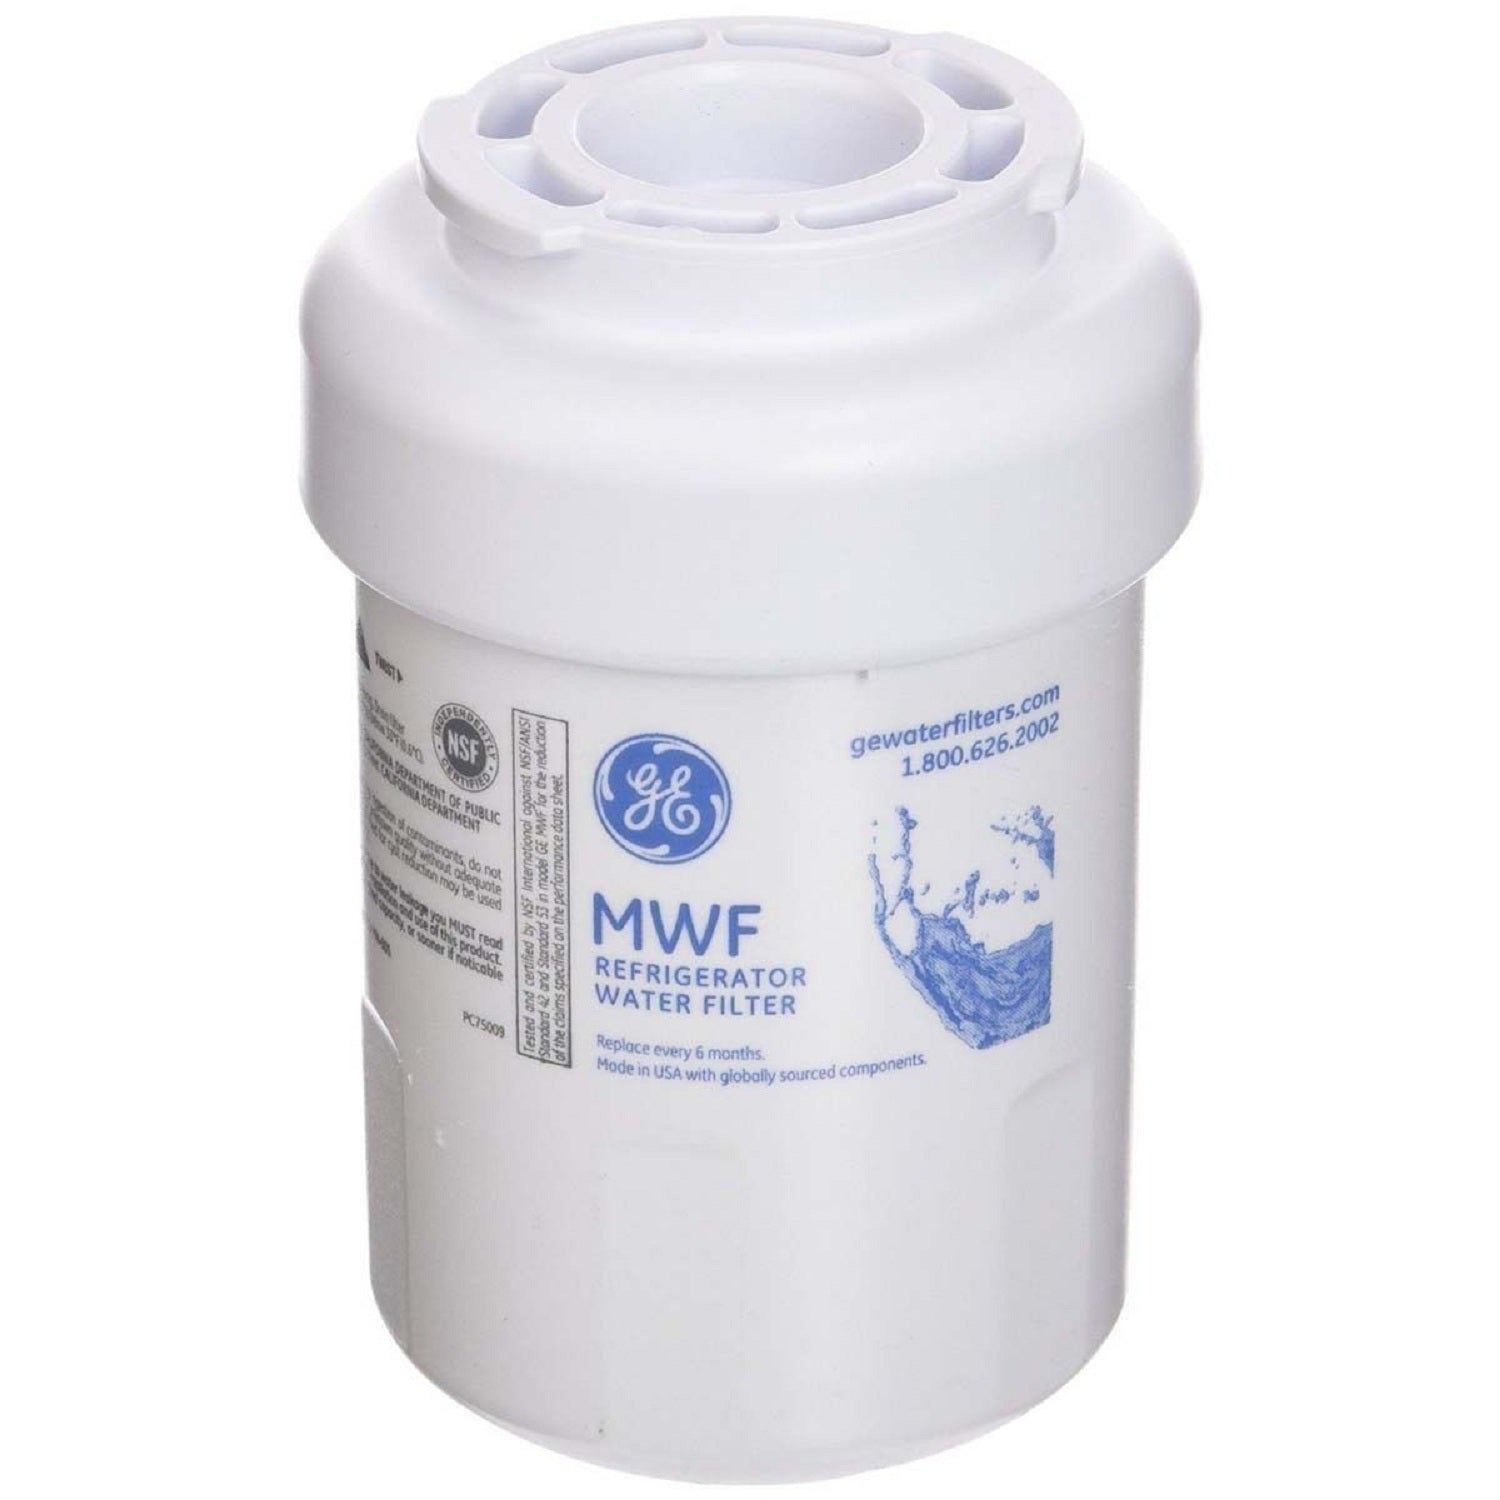 GE General Electric MWF Refrigerator Water Filter - Fine Filters